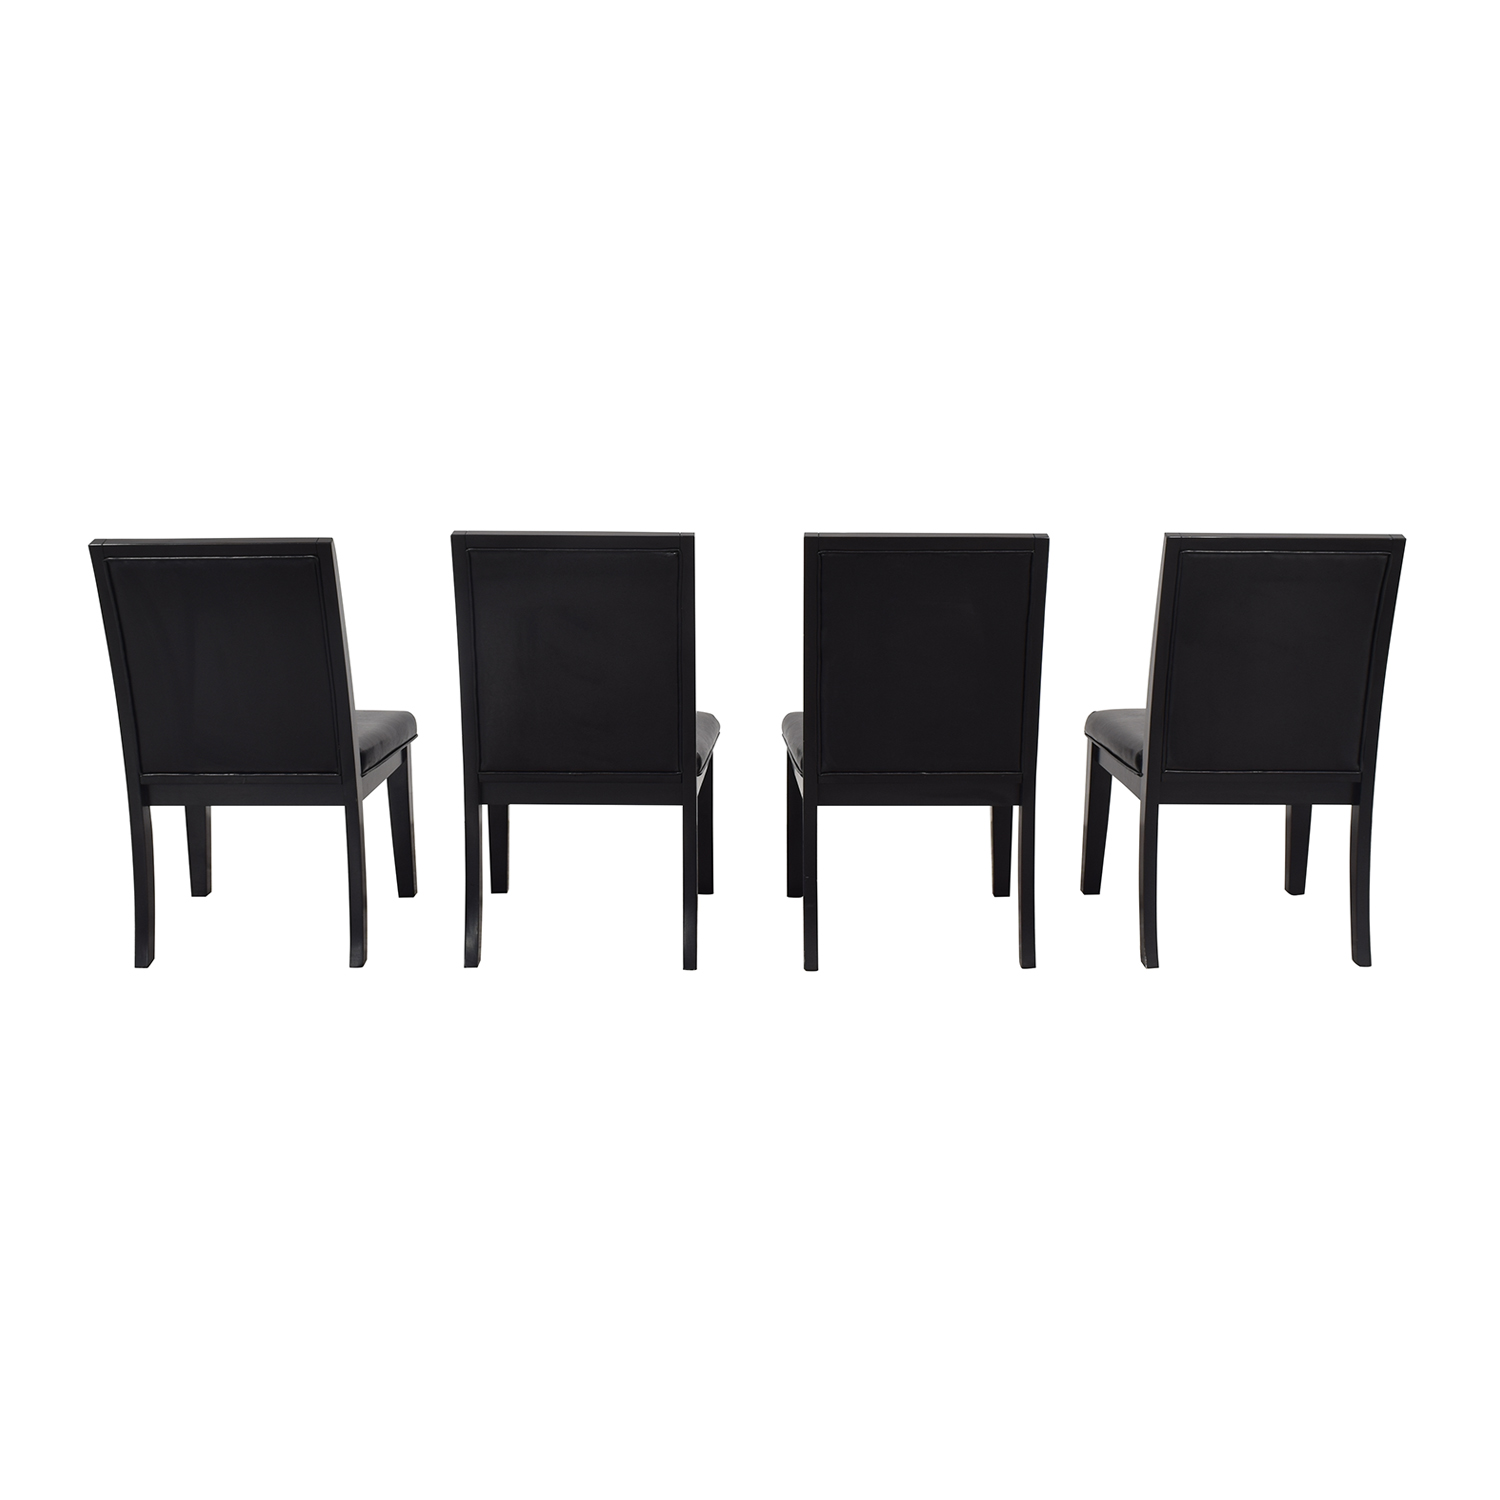 Calmart International Calmart International Dining Chairs for sale